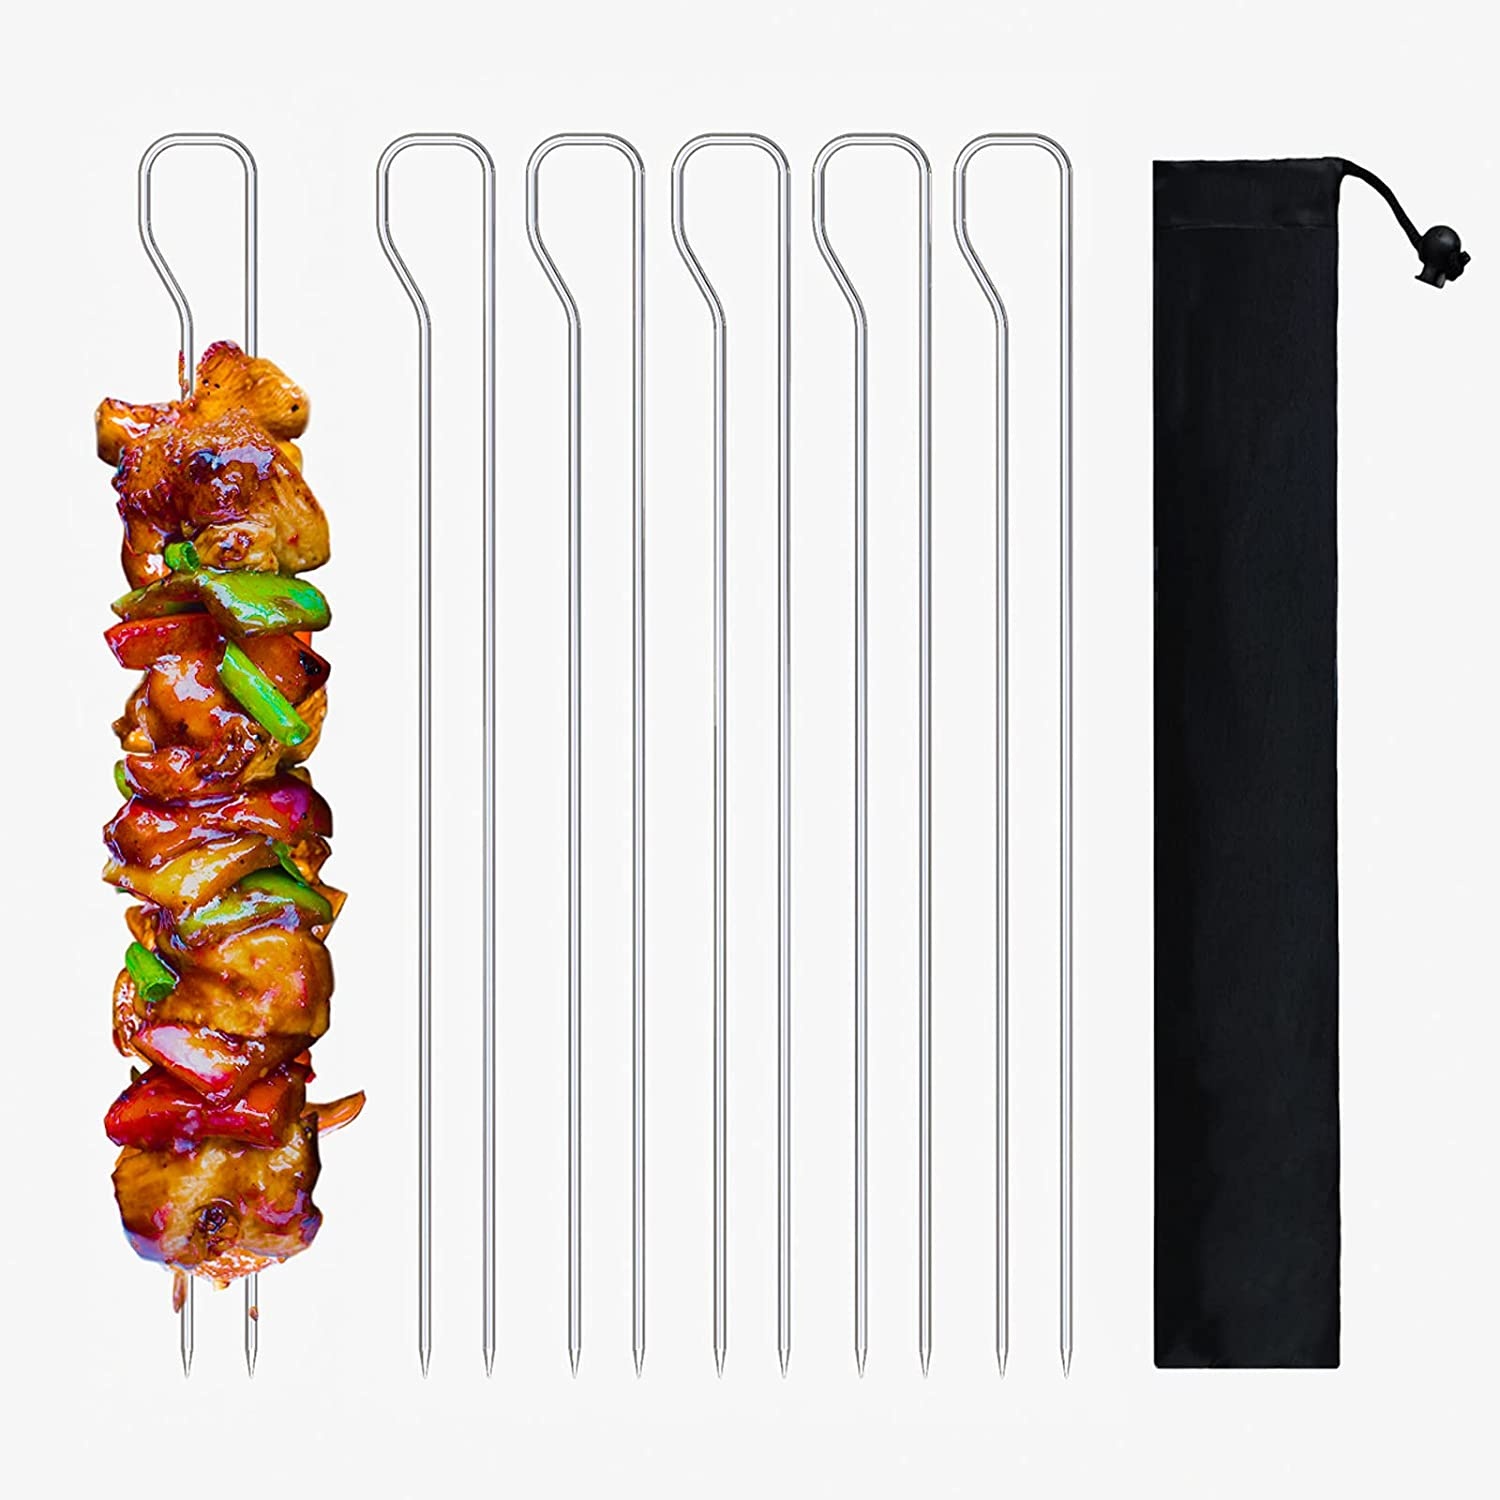 Ami Barbecue Skewers, Stainless Steel 12 Inch Set of 6 Reusable Double Prong BBQ Kabob Metal Shish Sticks for Grilling